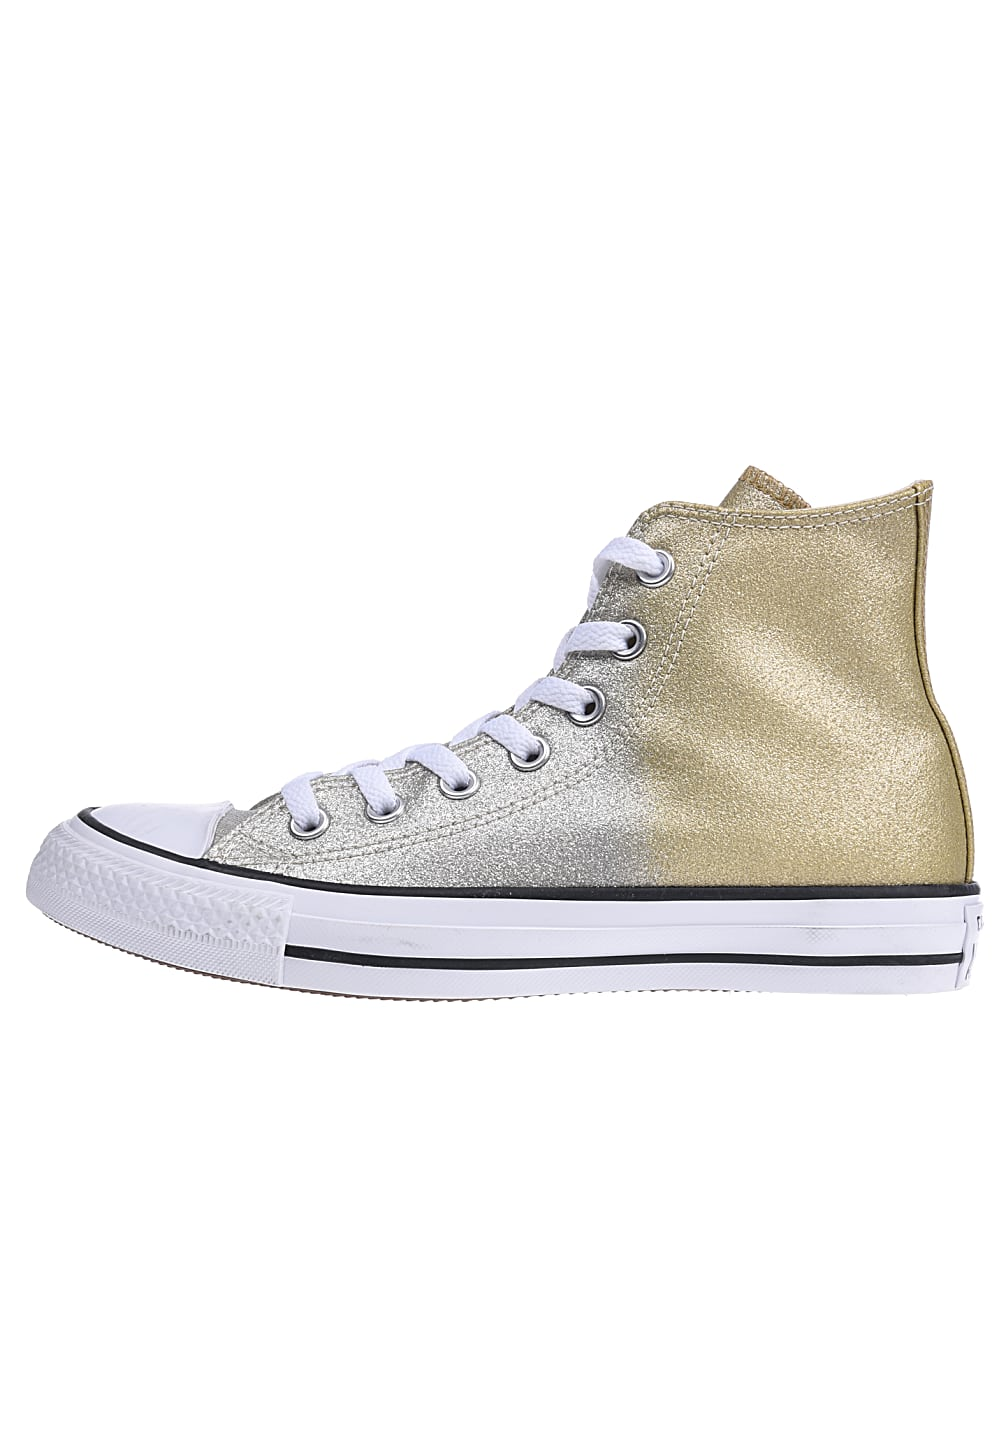 Converse Chuck Taylor All Star Hi Sneaker Gold